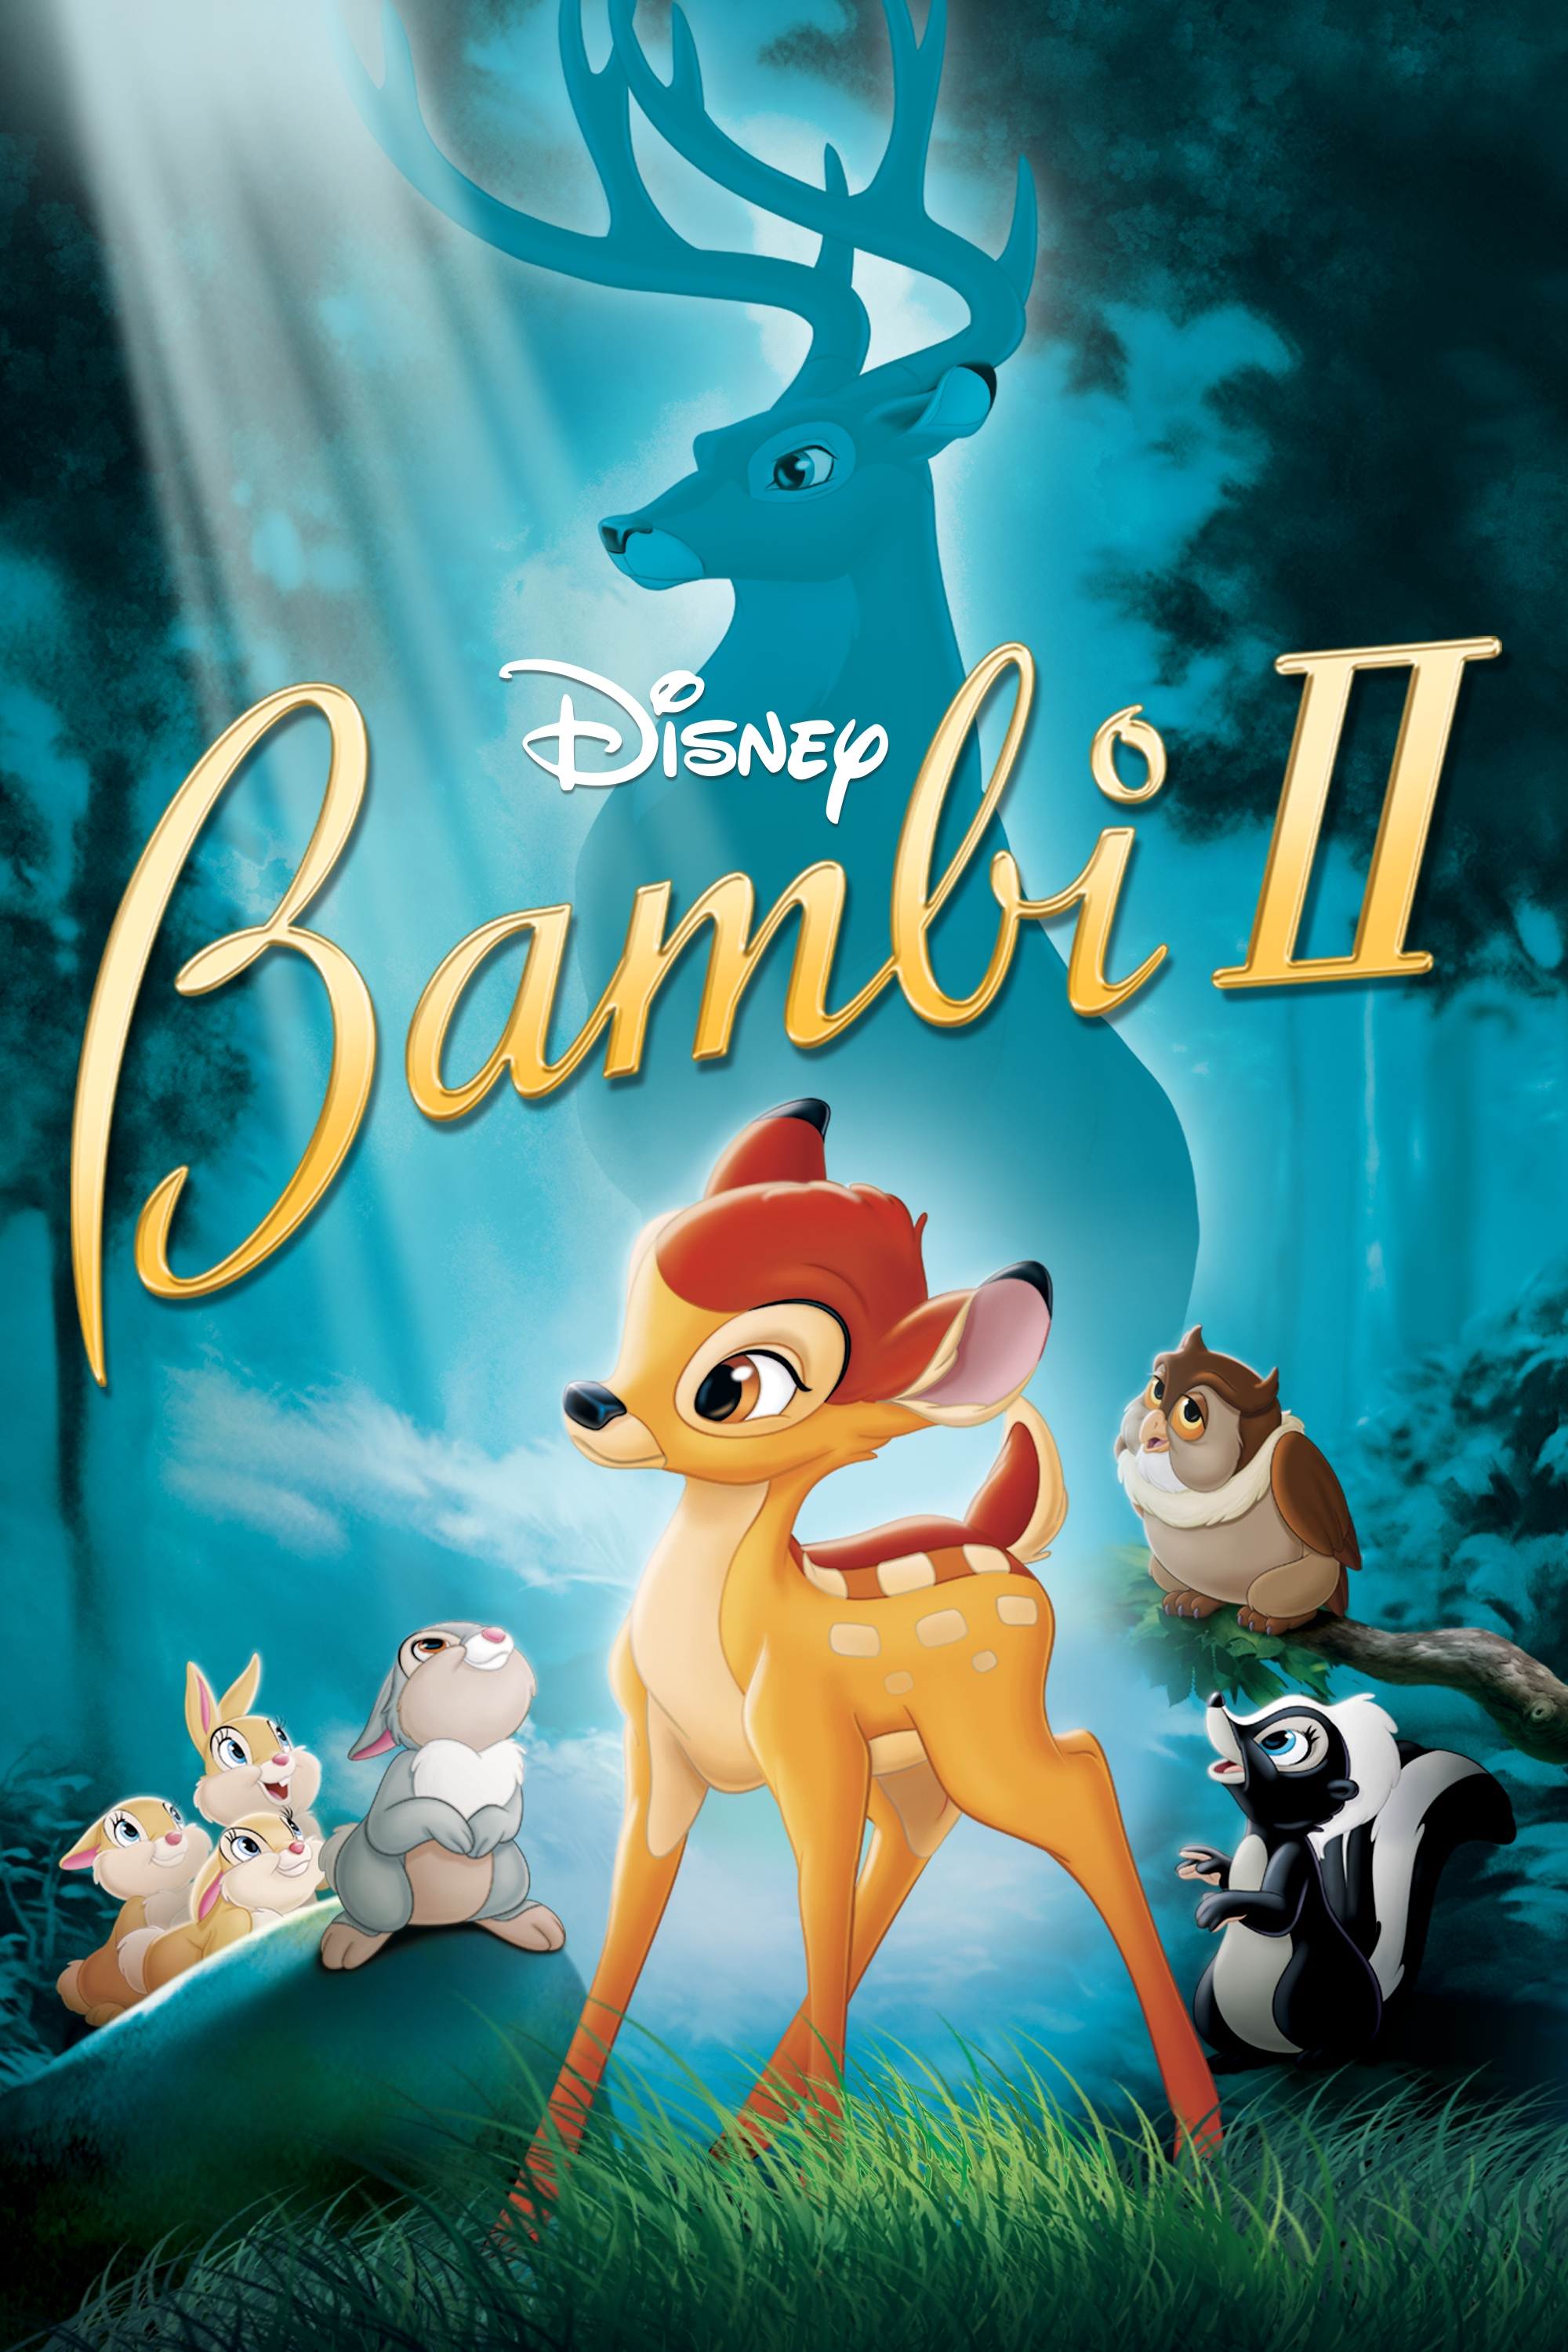 Bambi II | Disney Wiki | FANDOM powered by Wikia